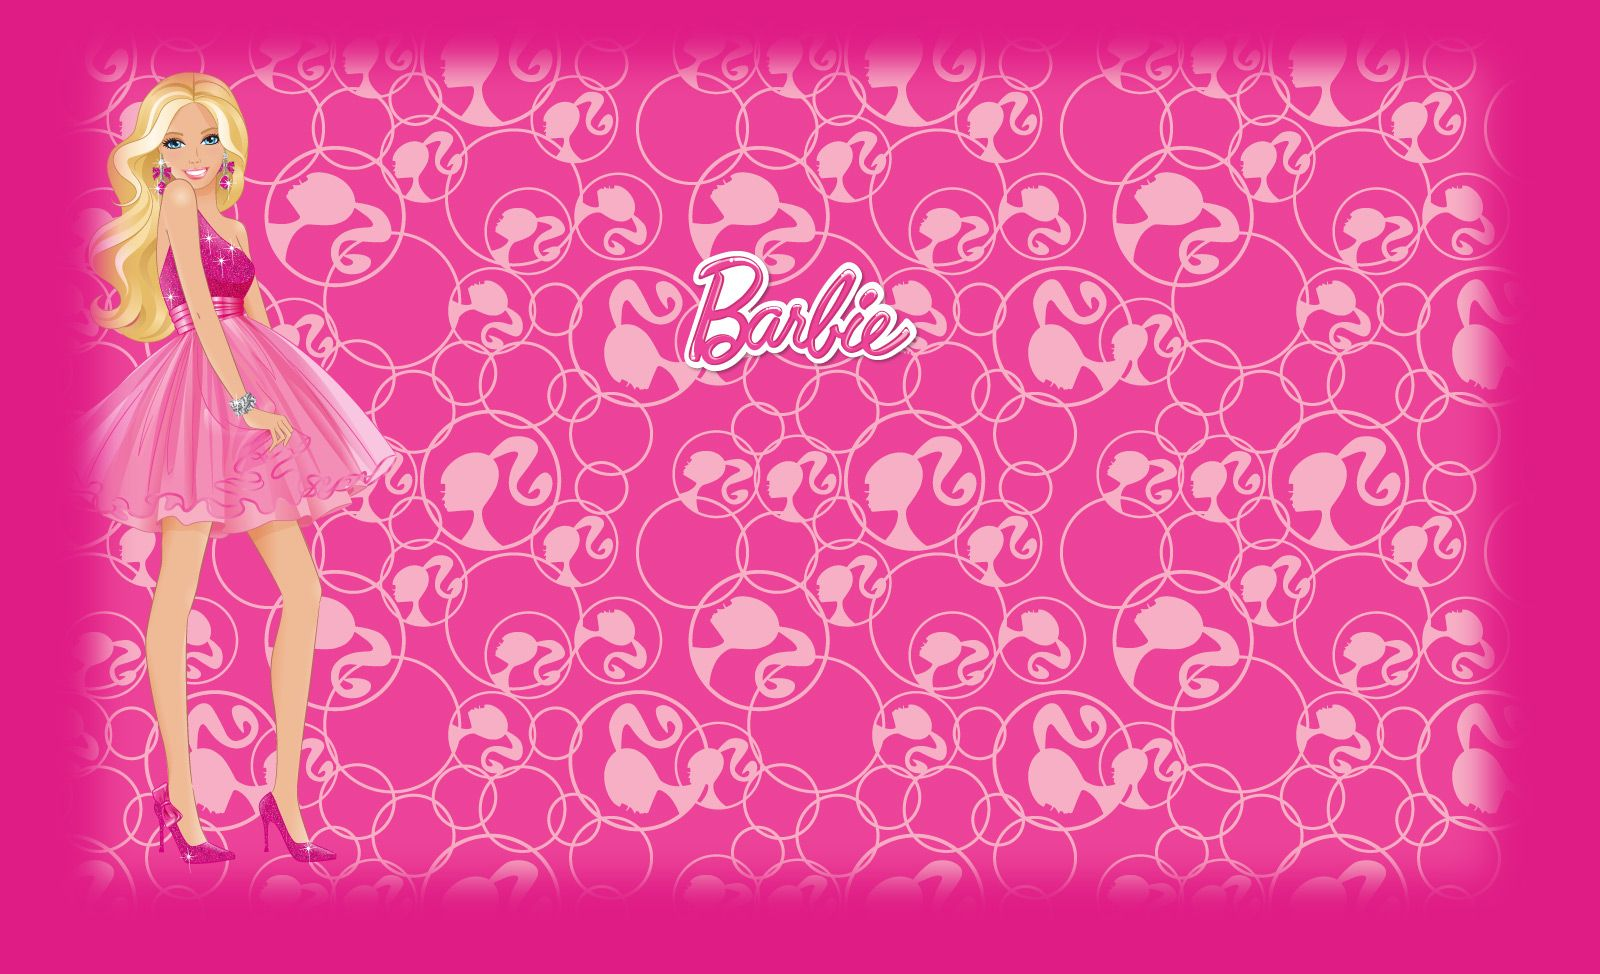 barbie background   Google Search Pictures of barbie dolls 1600x974